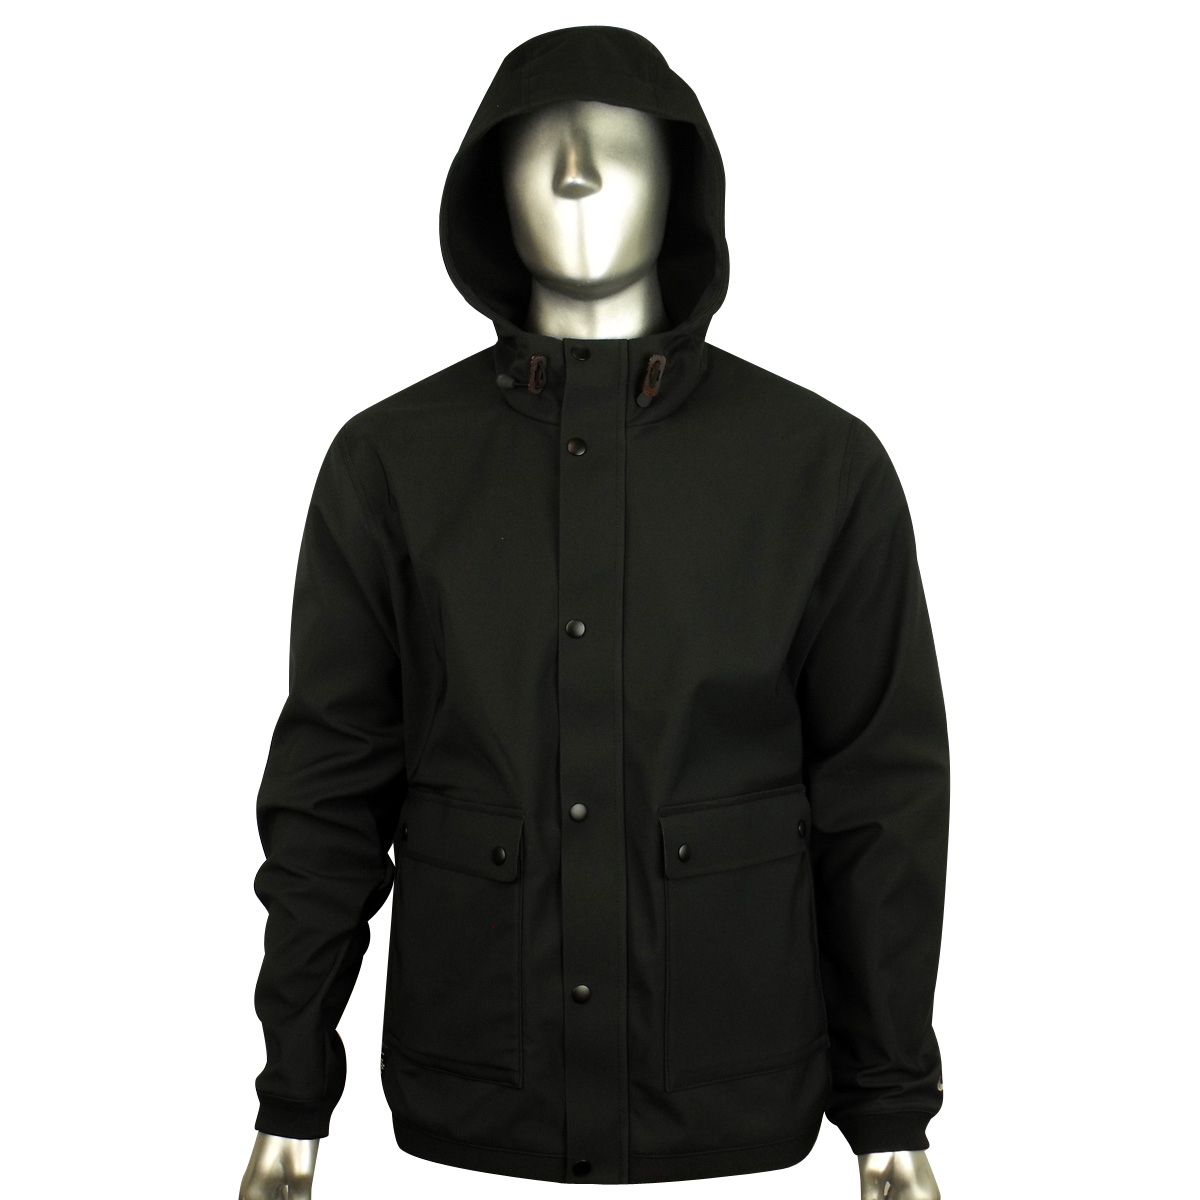 Nike jackets ebay australia